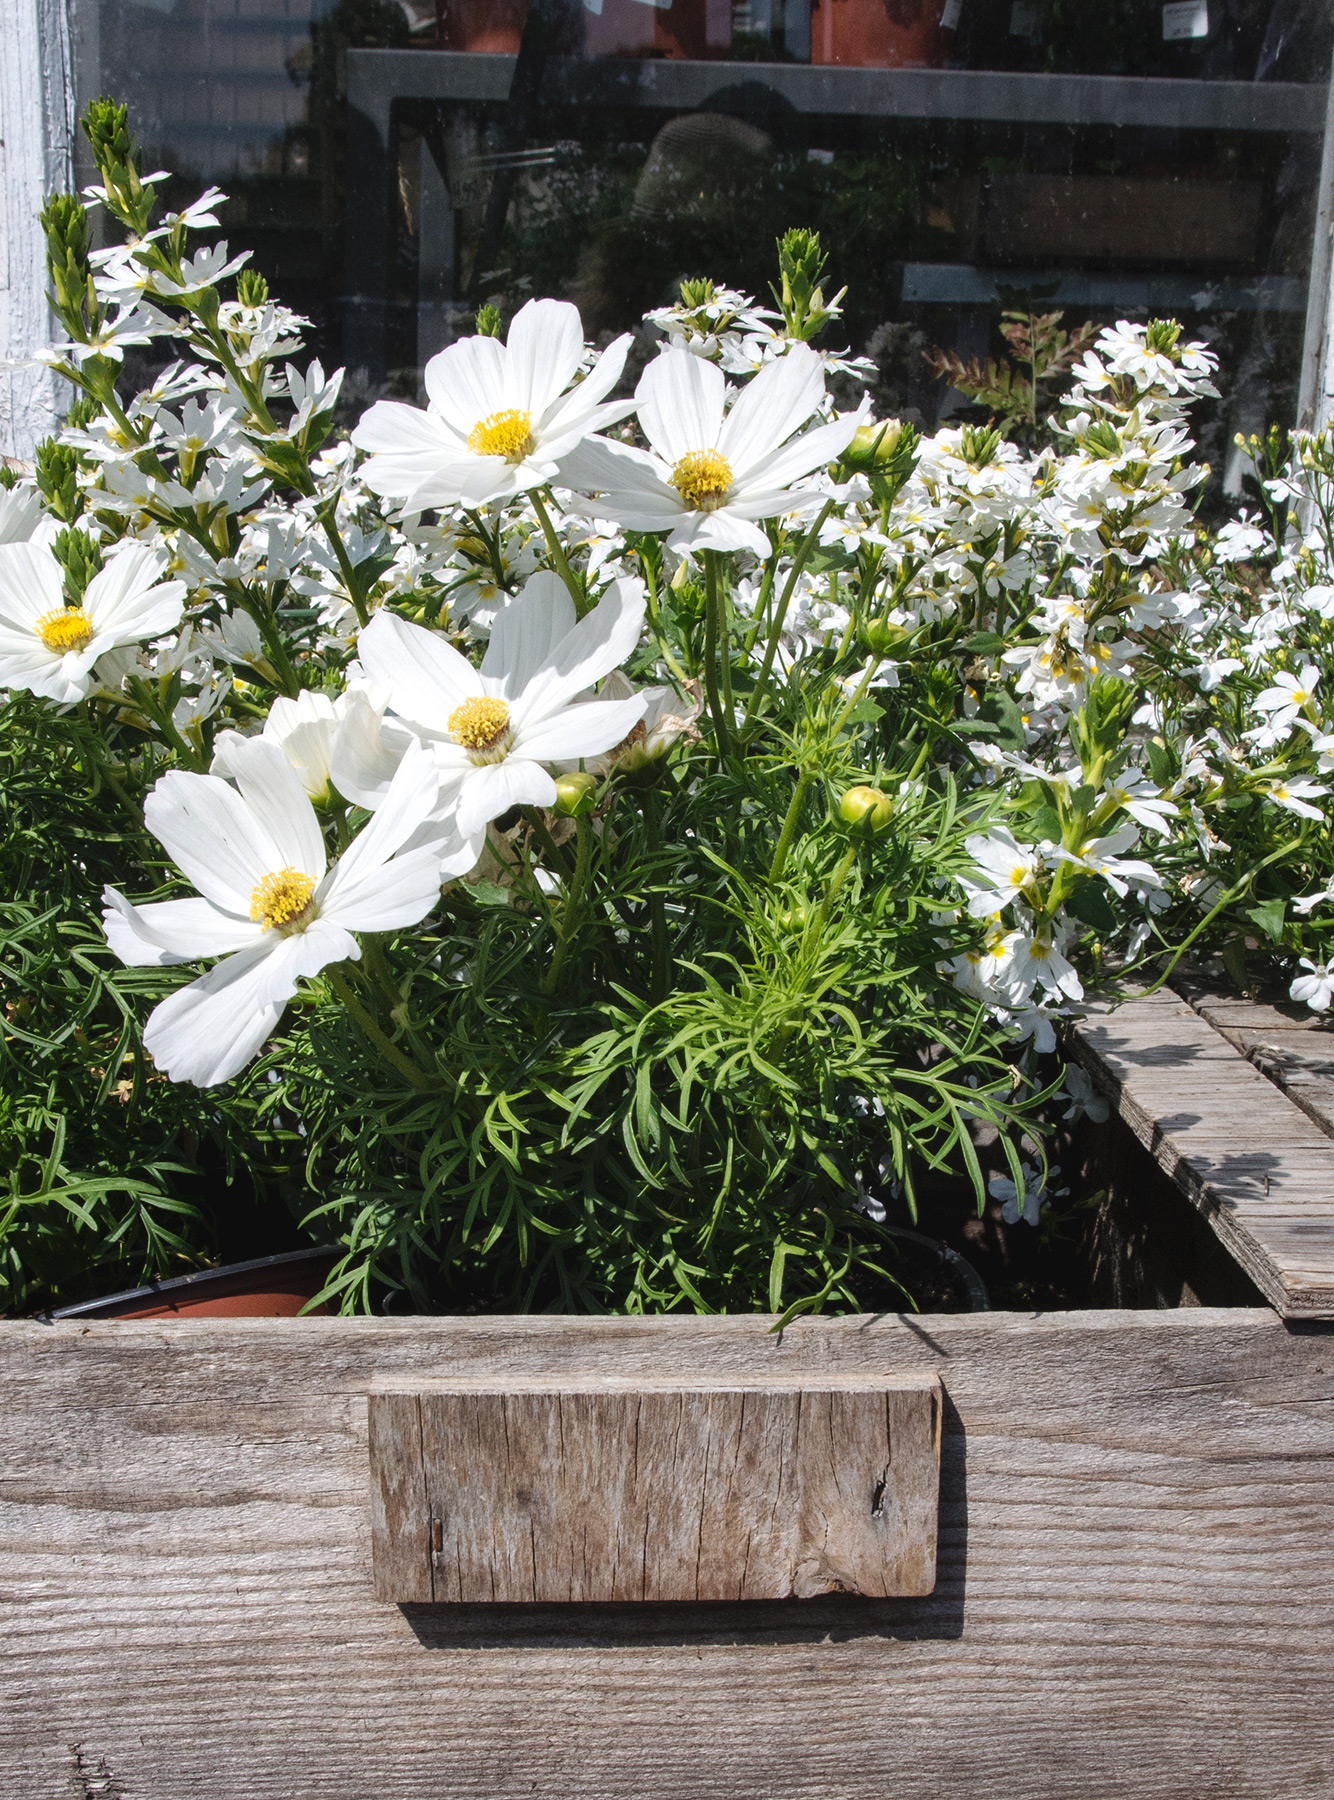 White cosmos in wooden basket